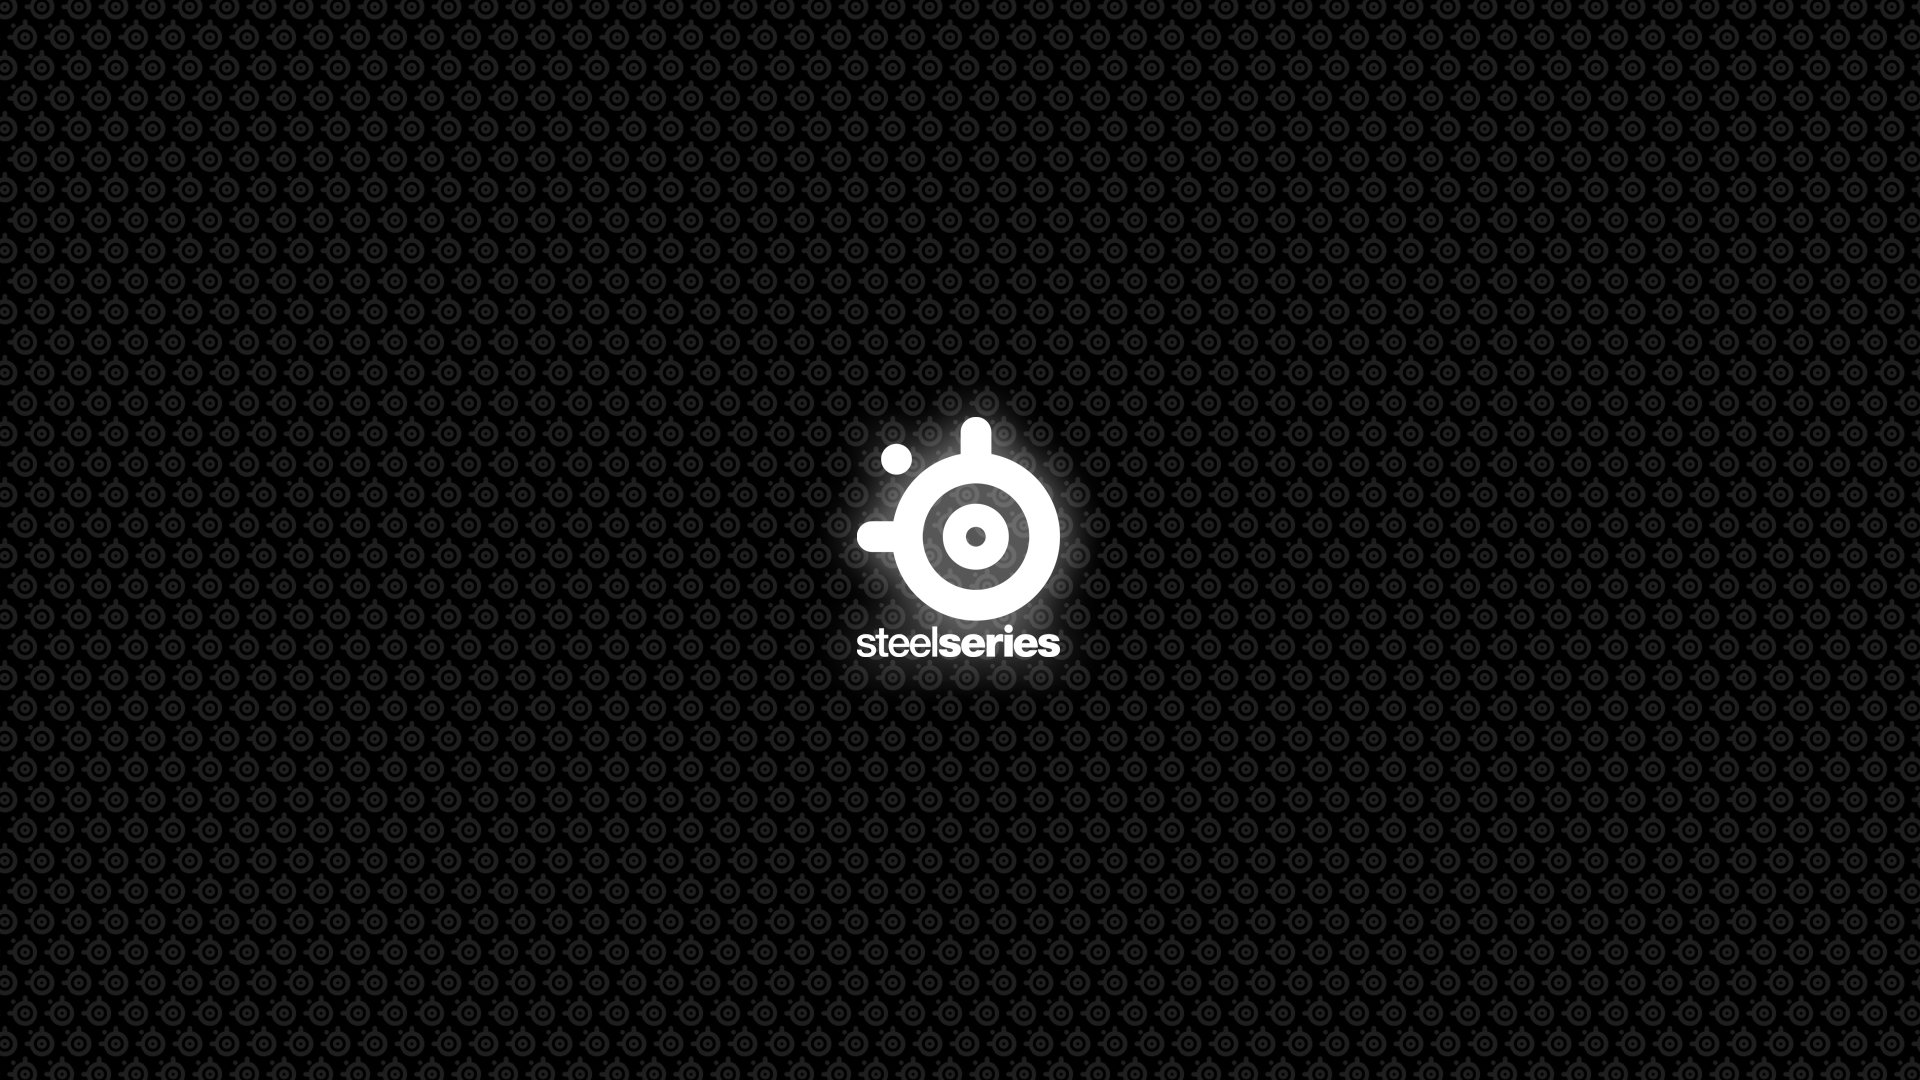 Steelseries Wallpapers Wallpaper Cave